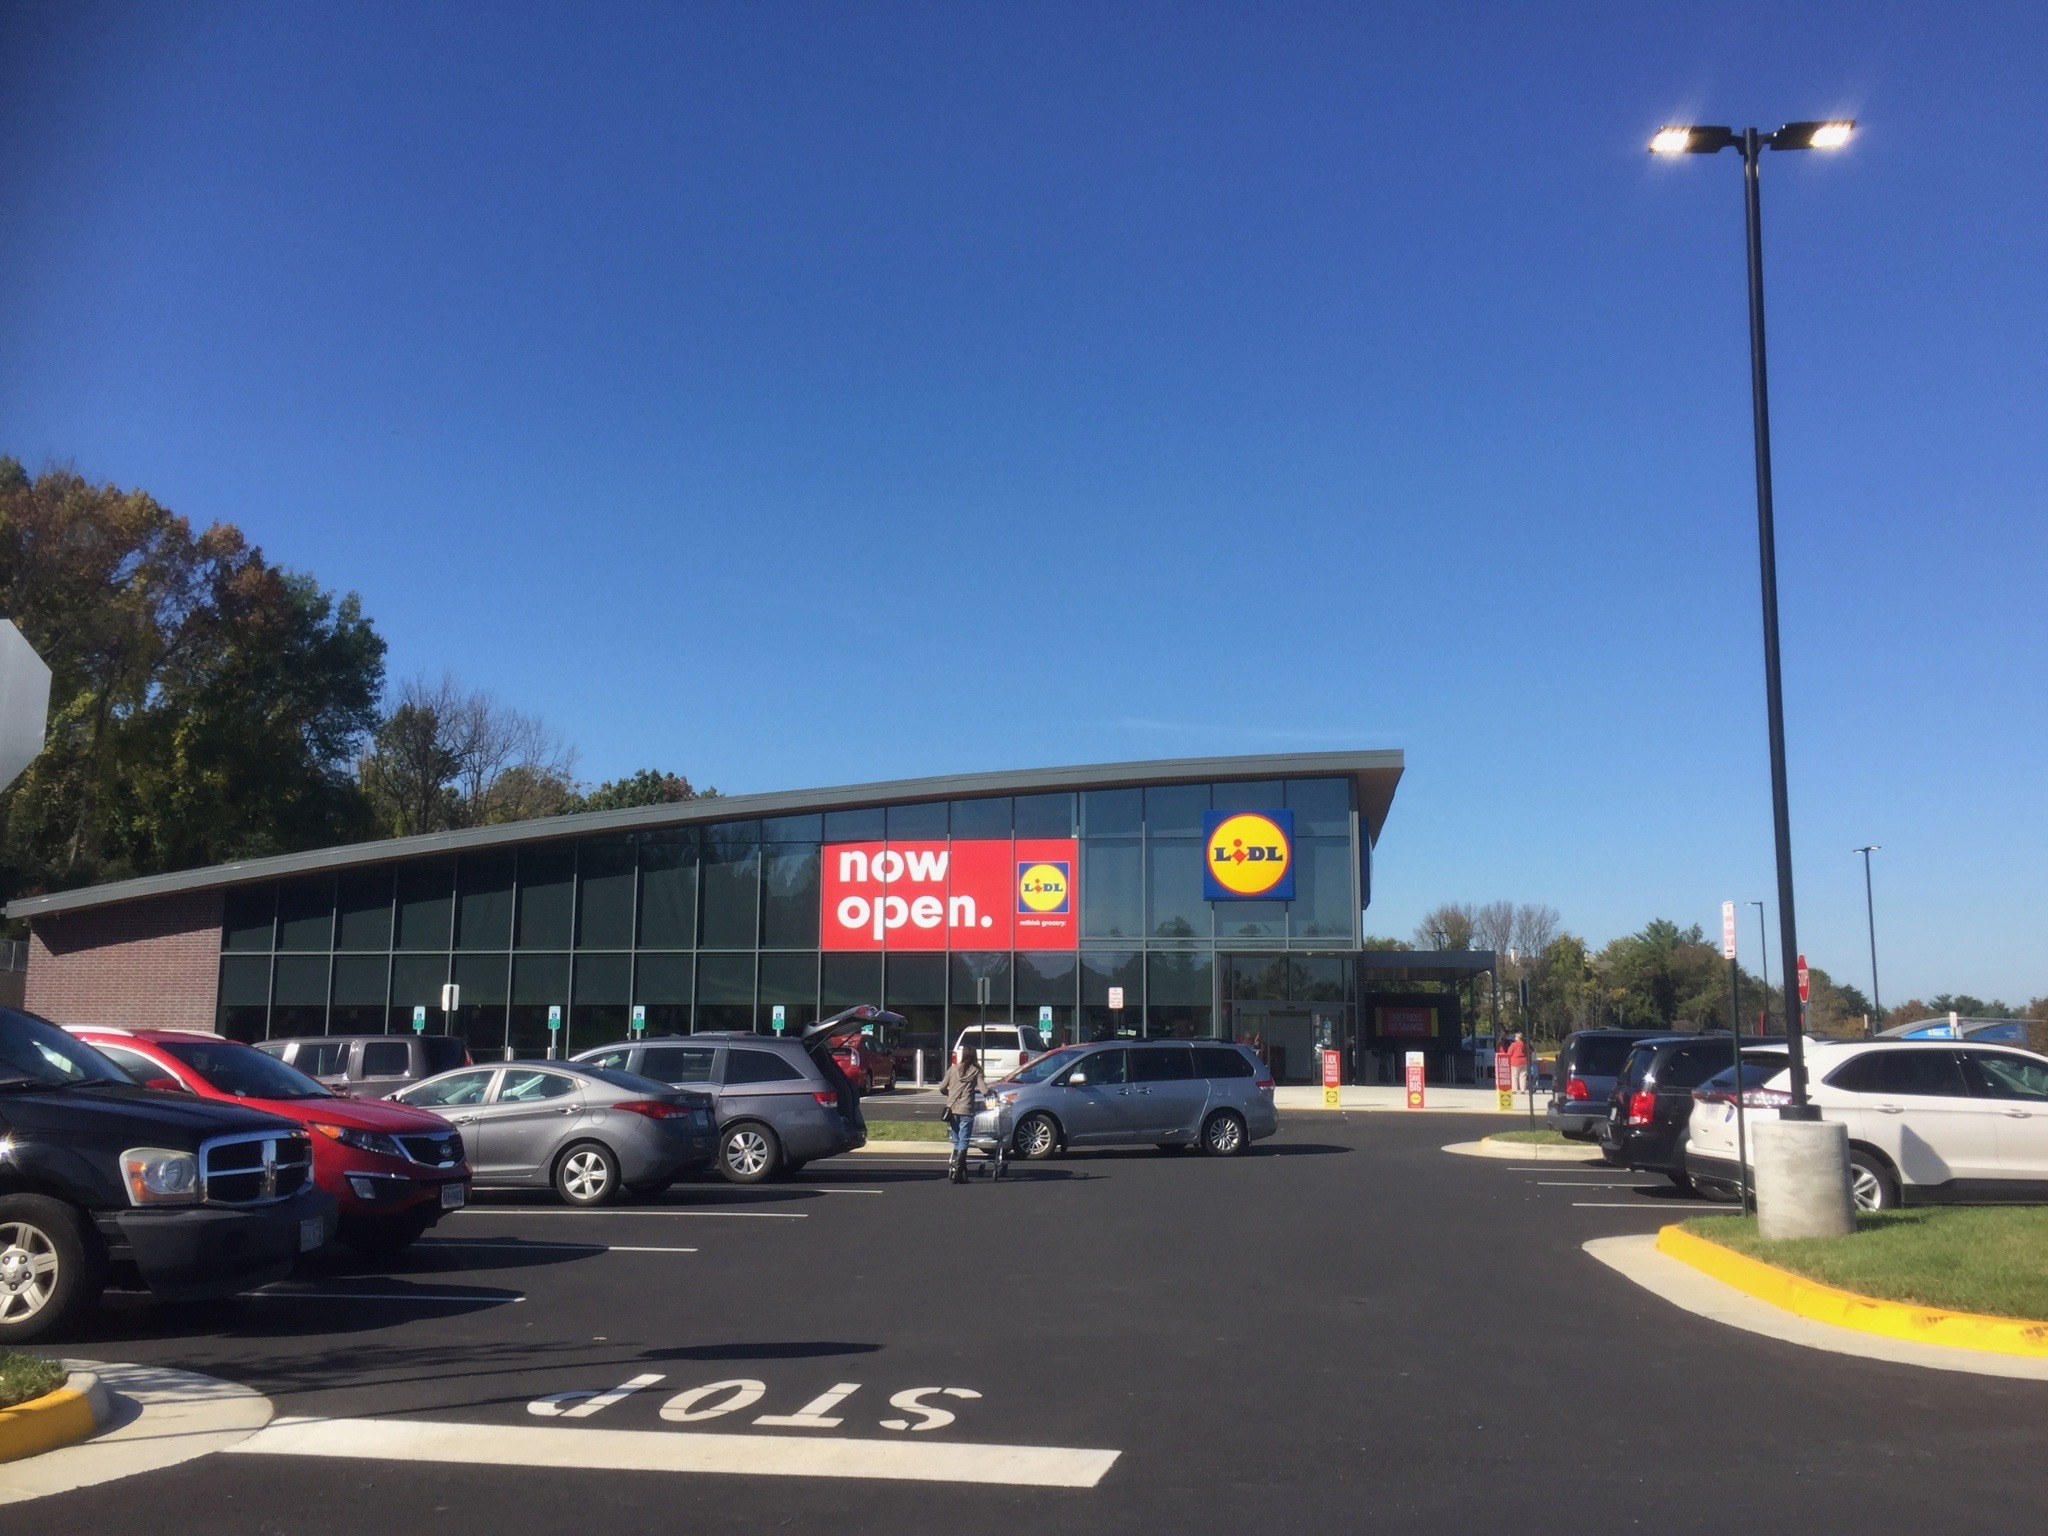 Inside a Lidl store in the US: How does it compare to Aldi?